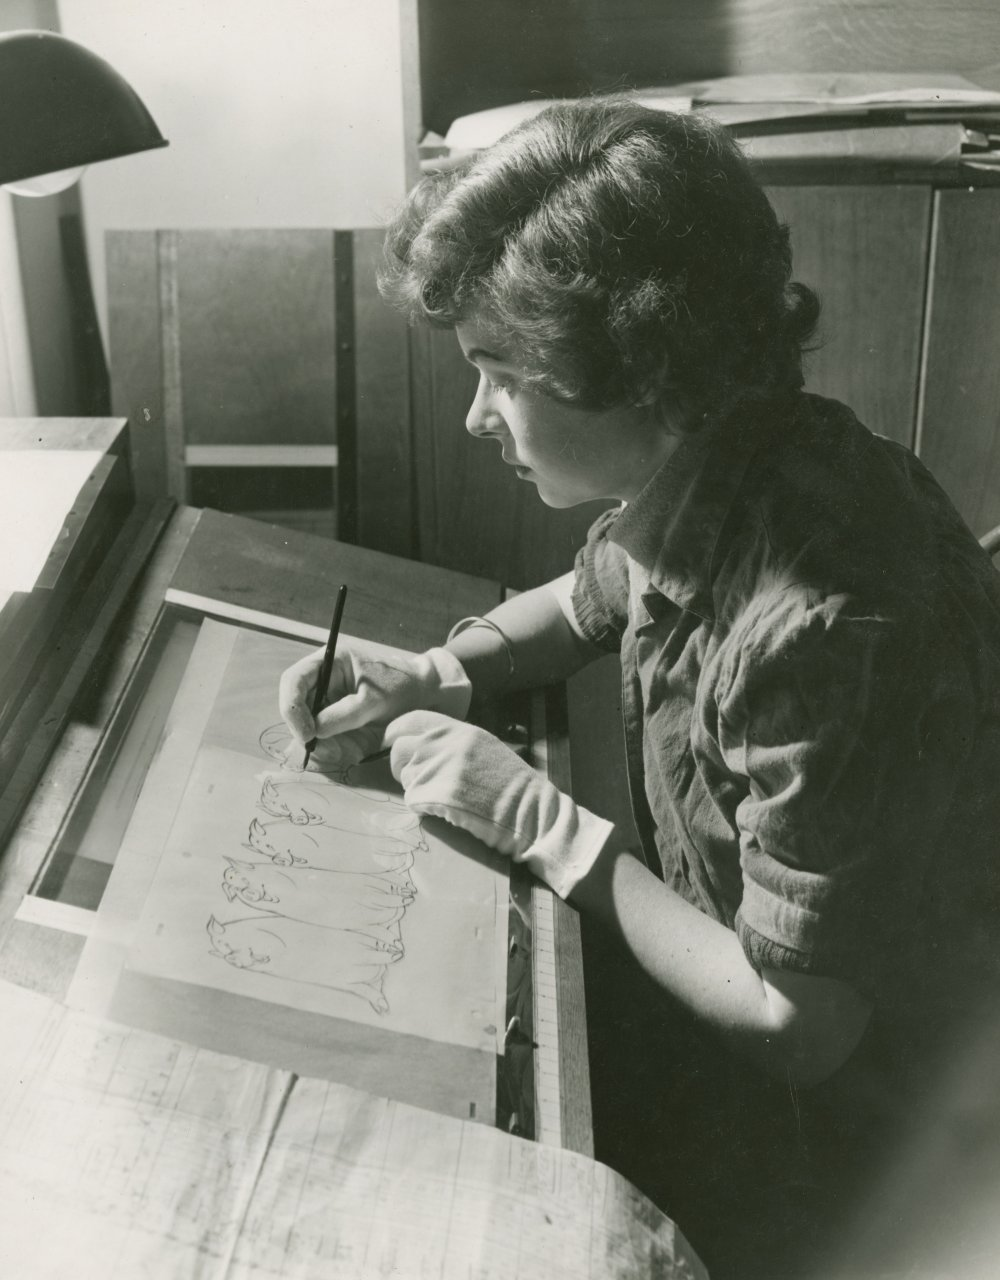 <strong>Alma Coles</strong>, ink and paint artist, Animal Farm (1954). Coles is at her desk working on pen and ink drawings of Snowball the pig. Animal Farm was the first postwar animation feature made in Britain